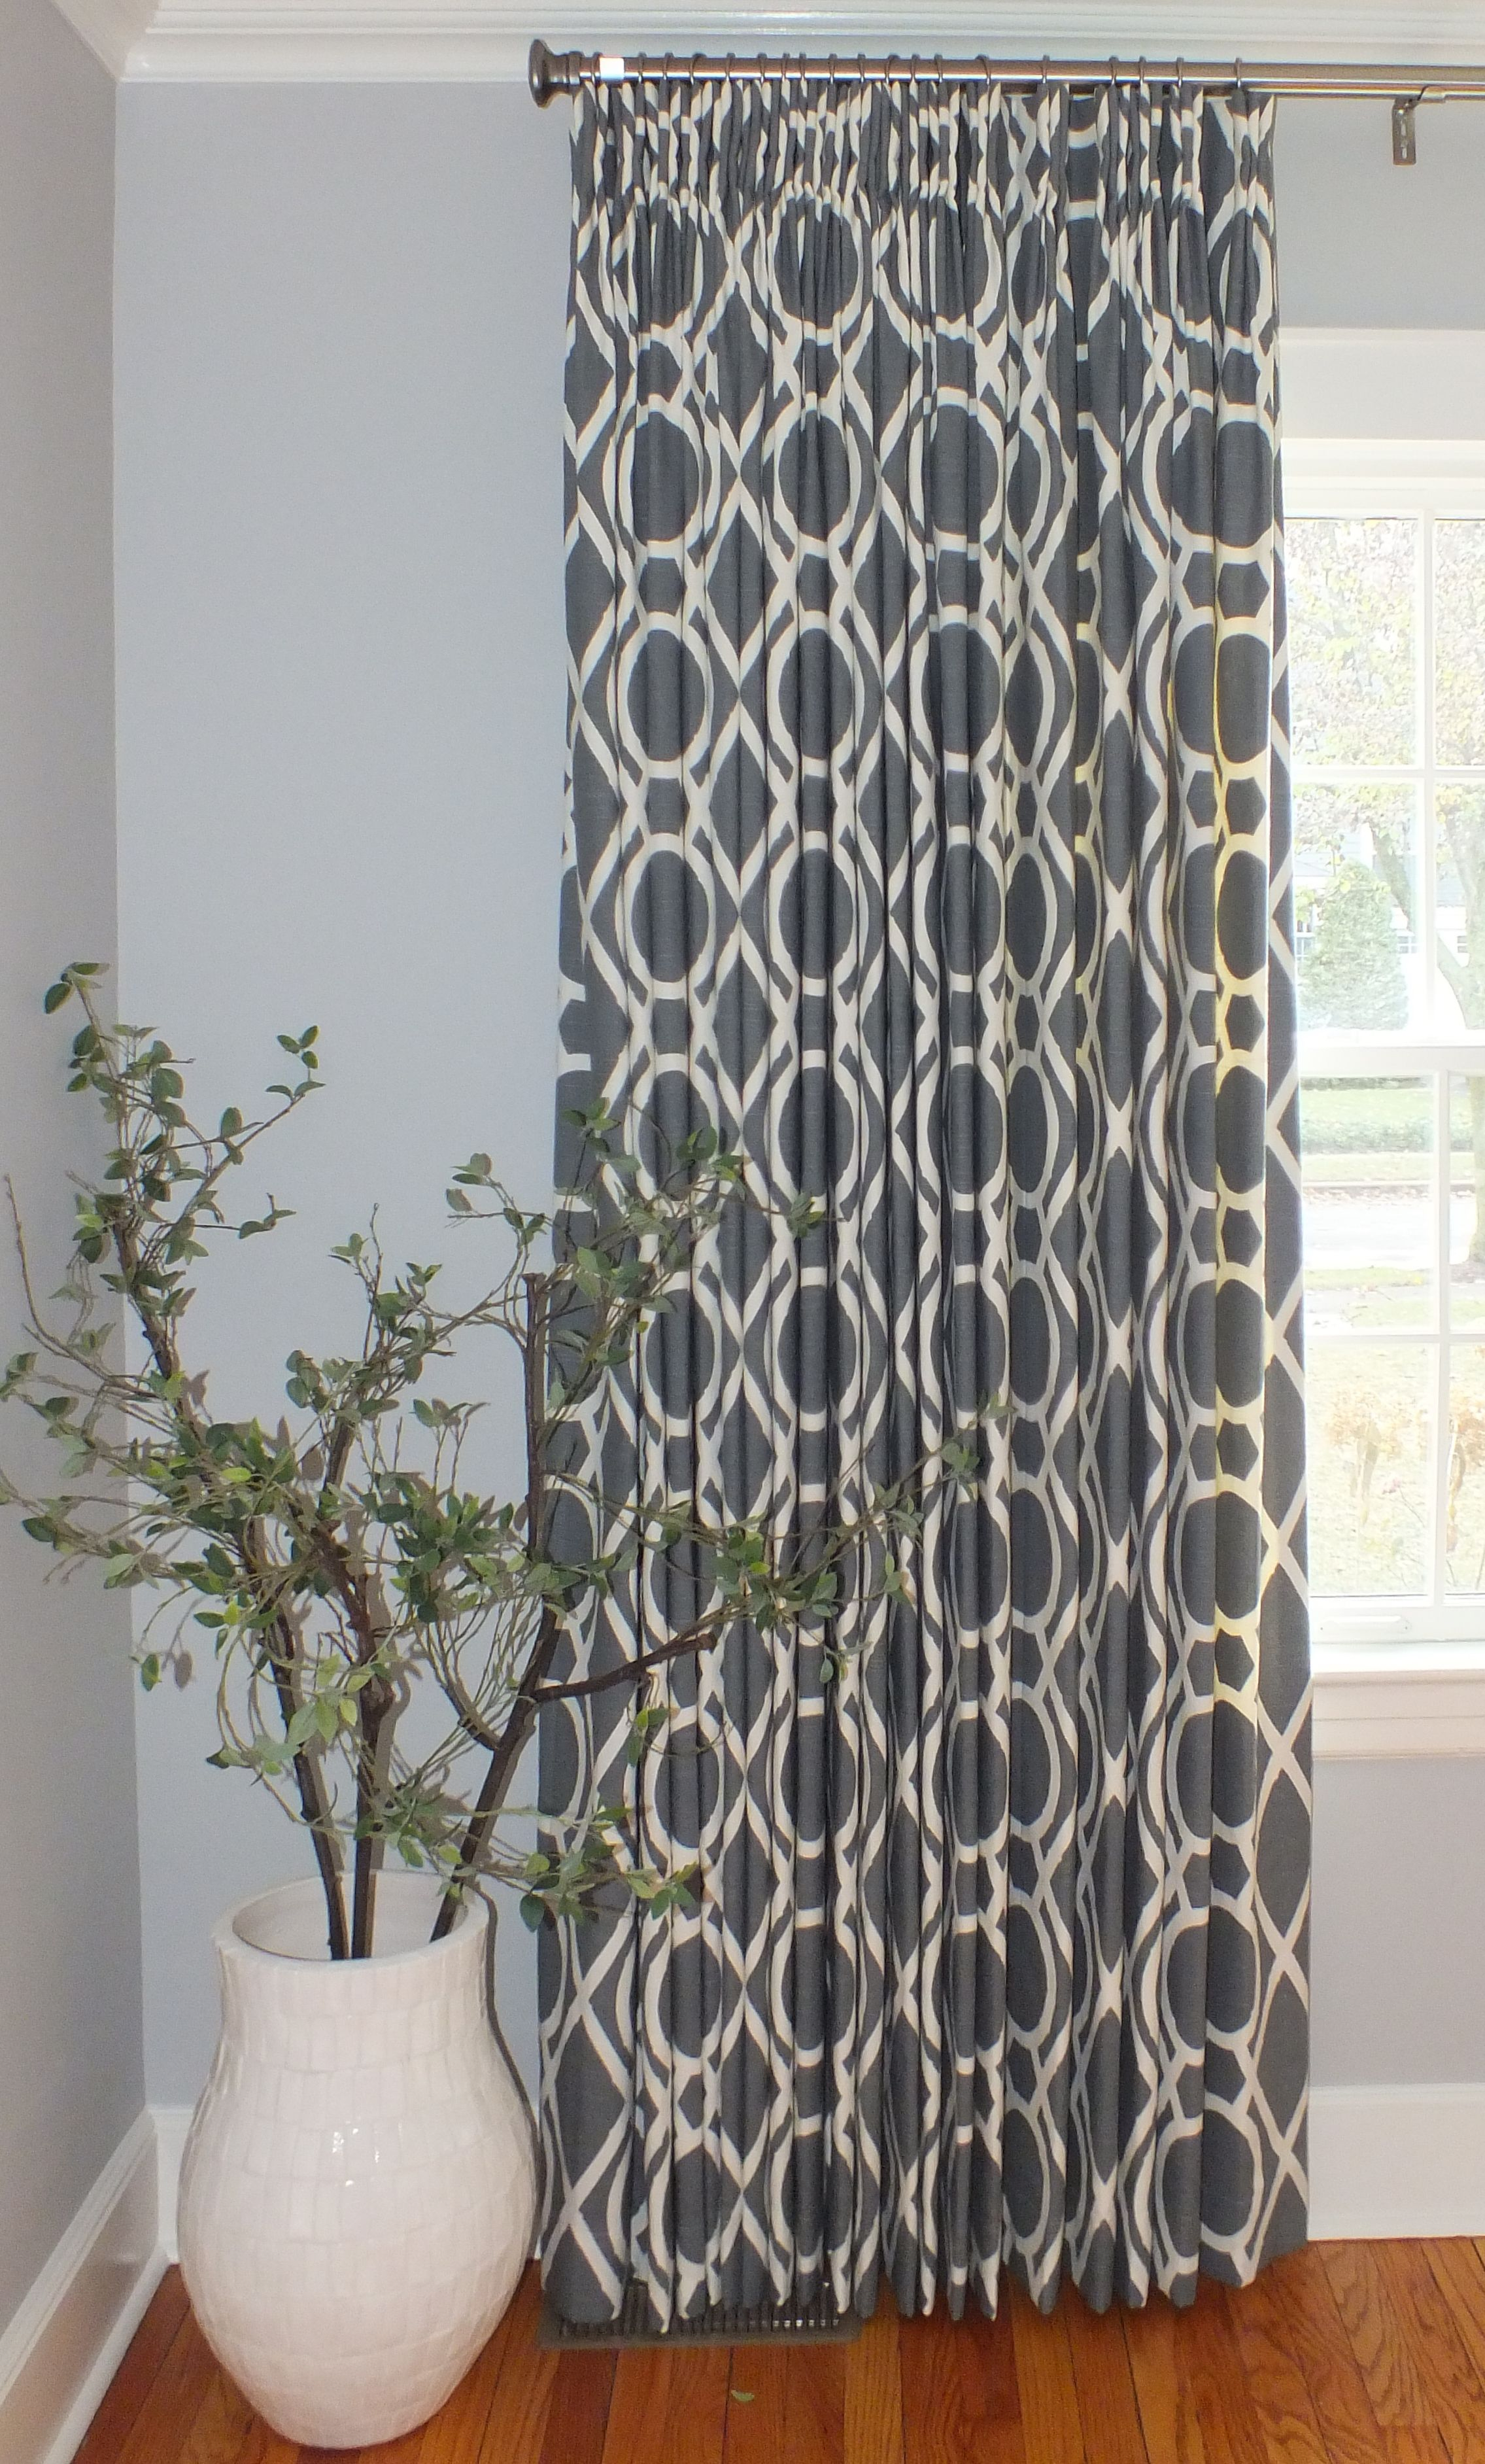 Custom window treatments. www.contemporarycolorconcepts.com.